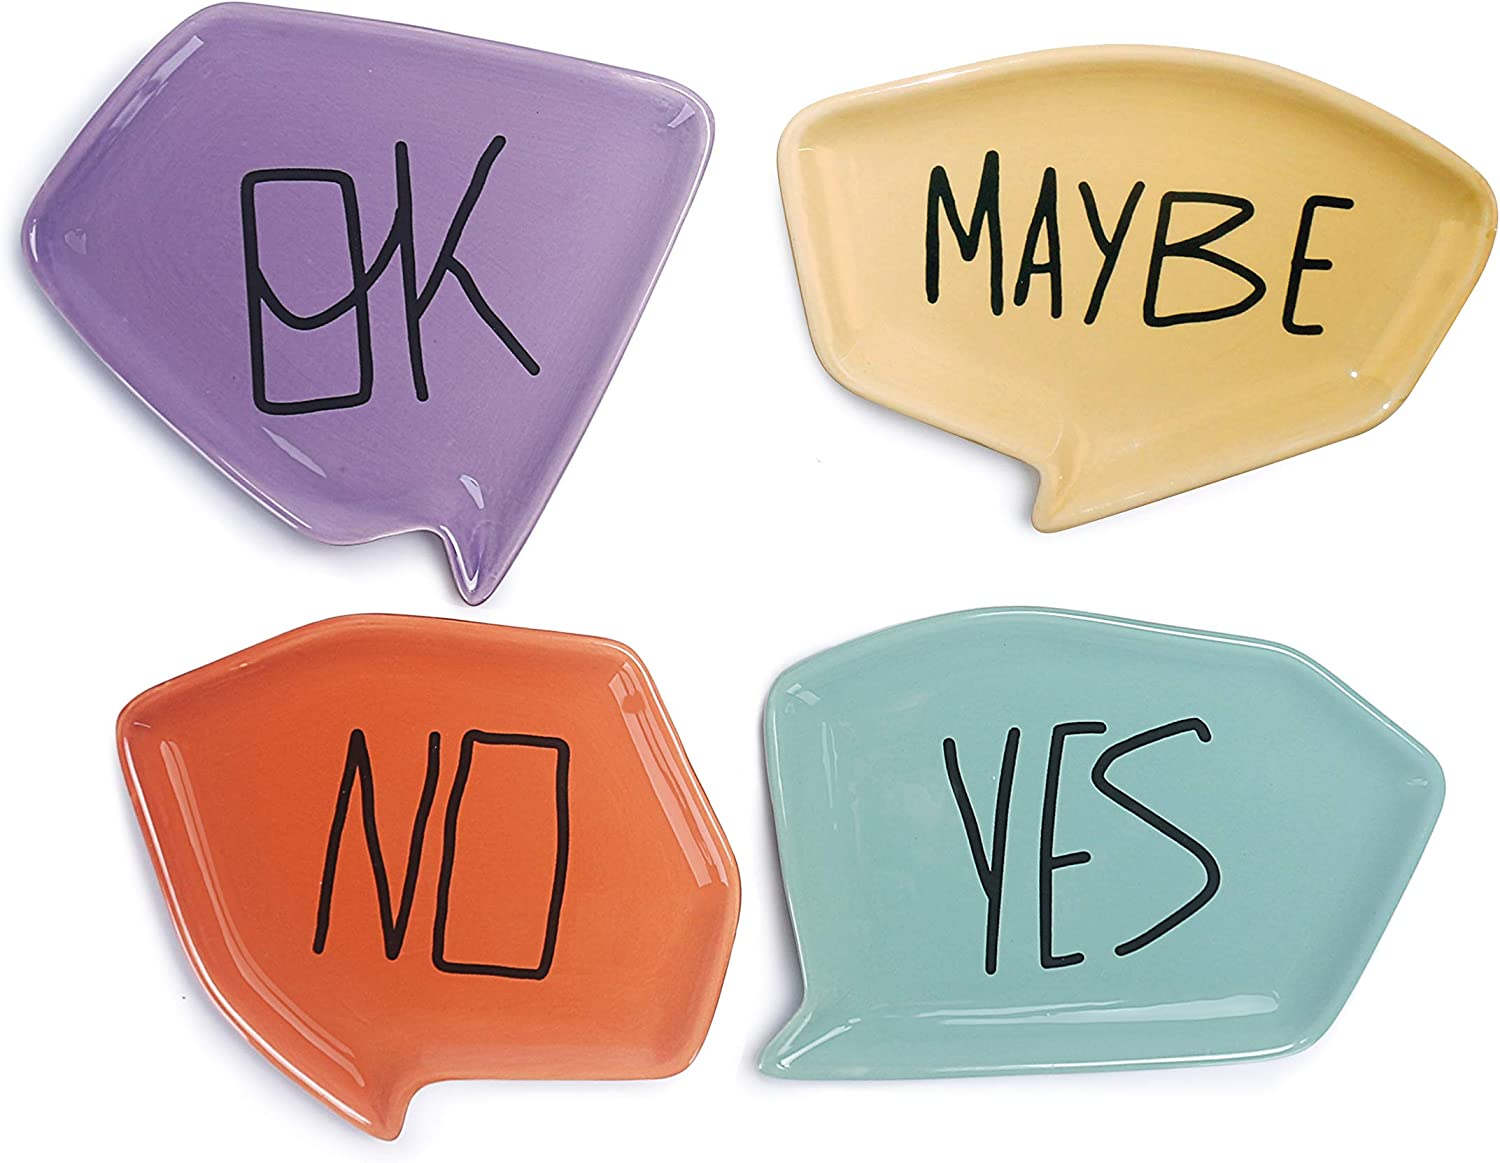 Bico Yes No Maybe Ok Ceramic Appetizer Plates Set of 4, Microwave & Dishwasher Safe, For Dessert, Fruit, Cookie